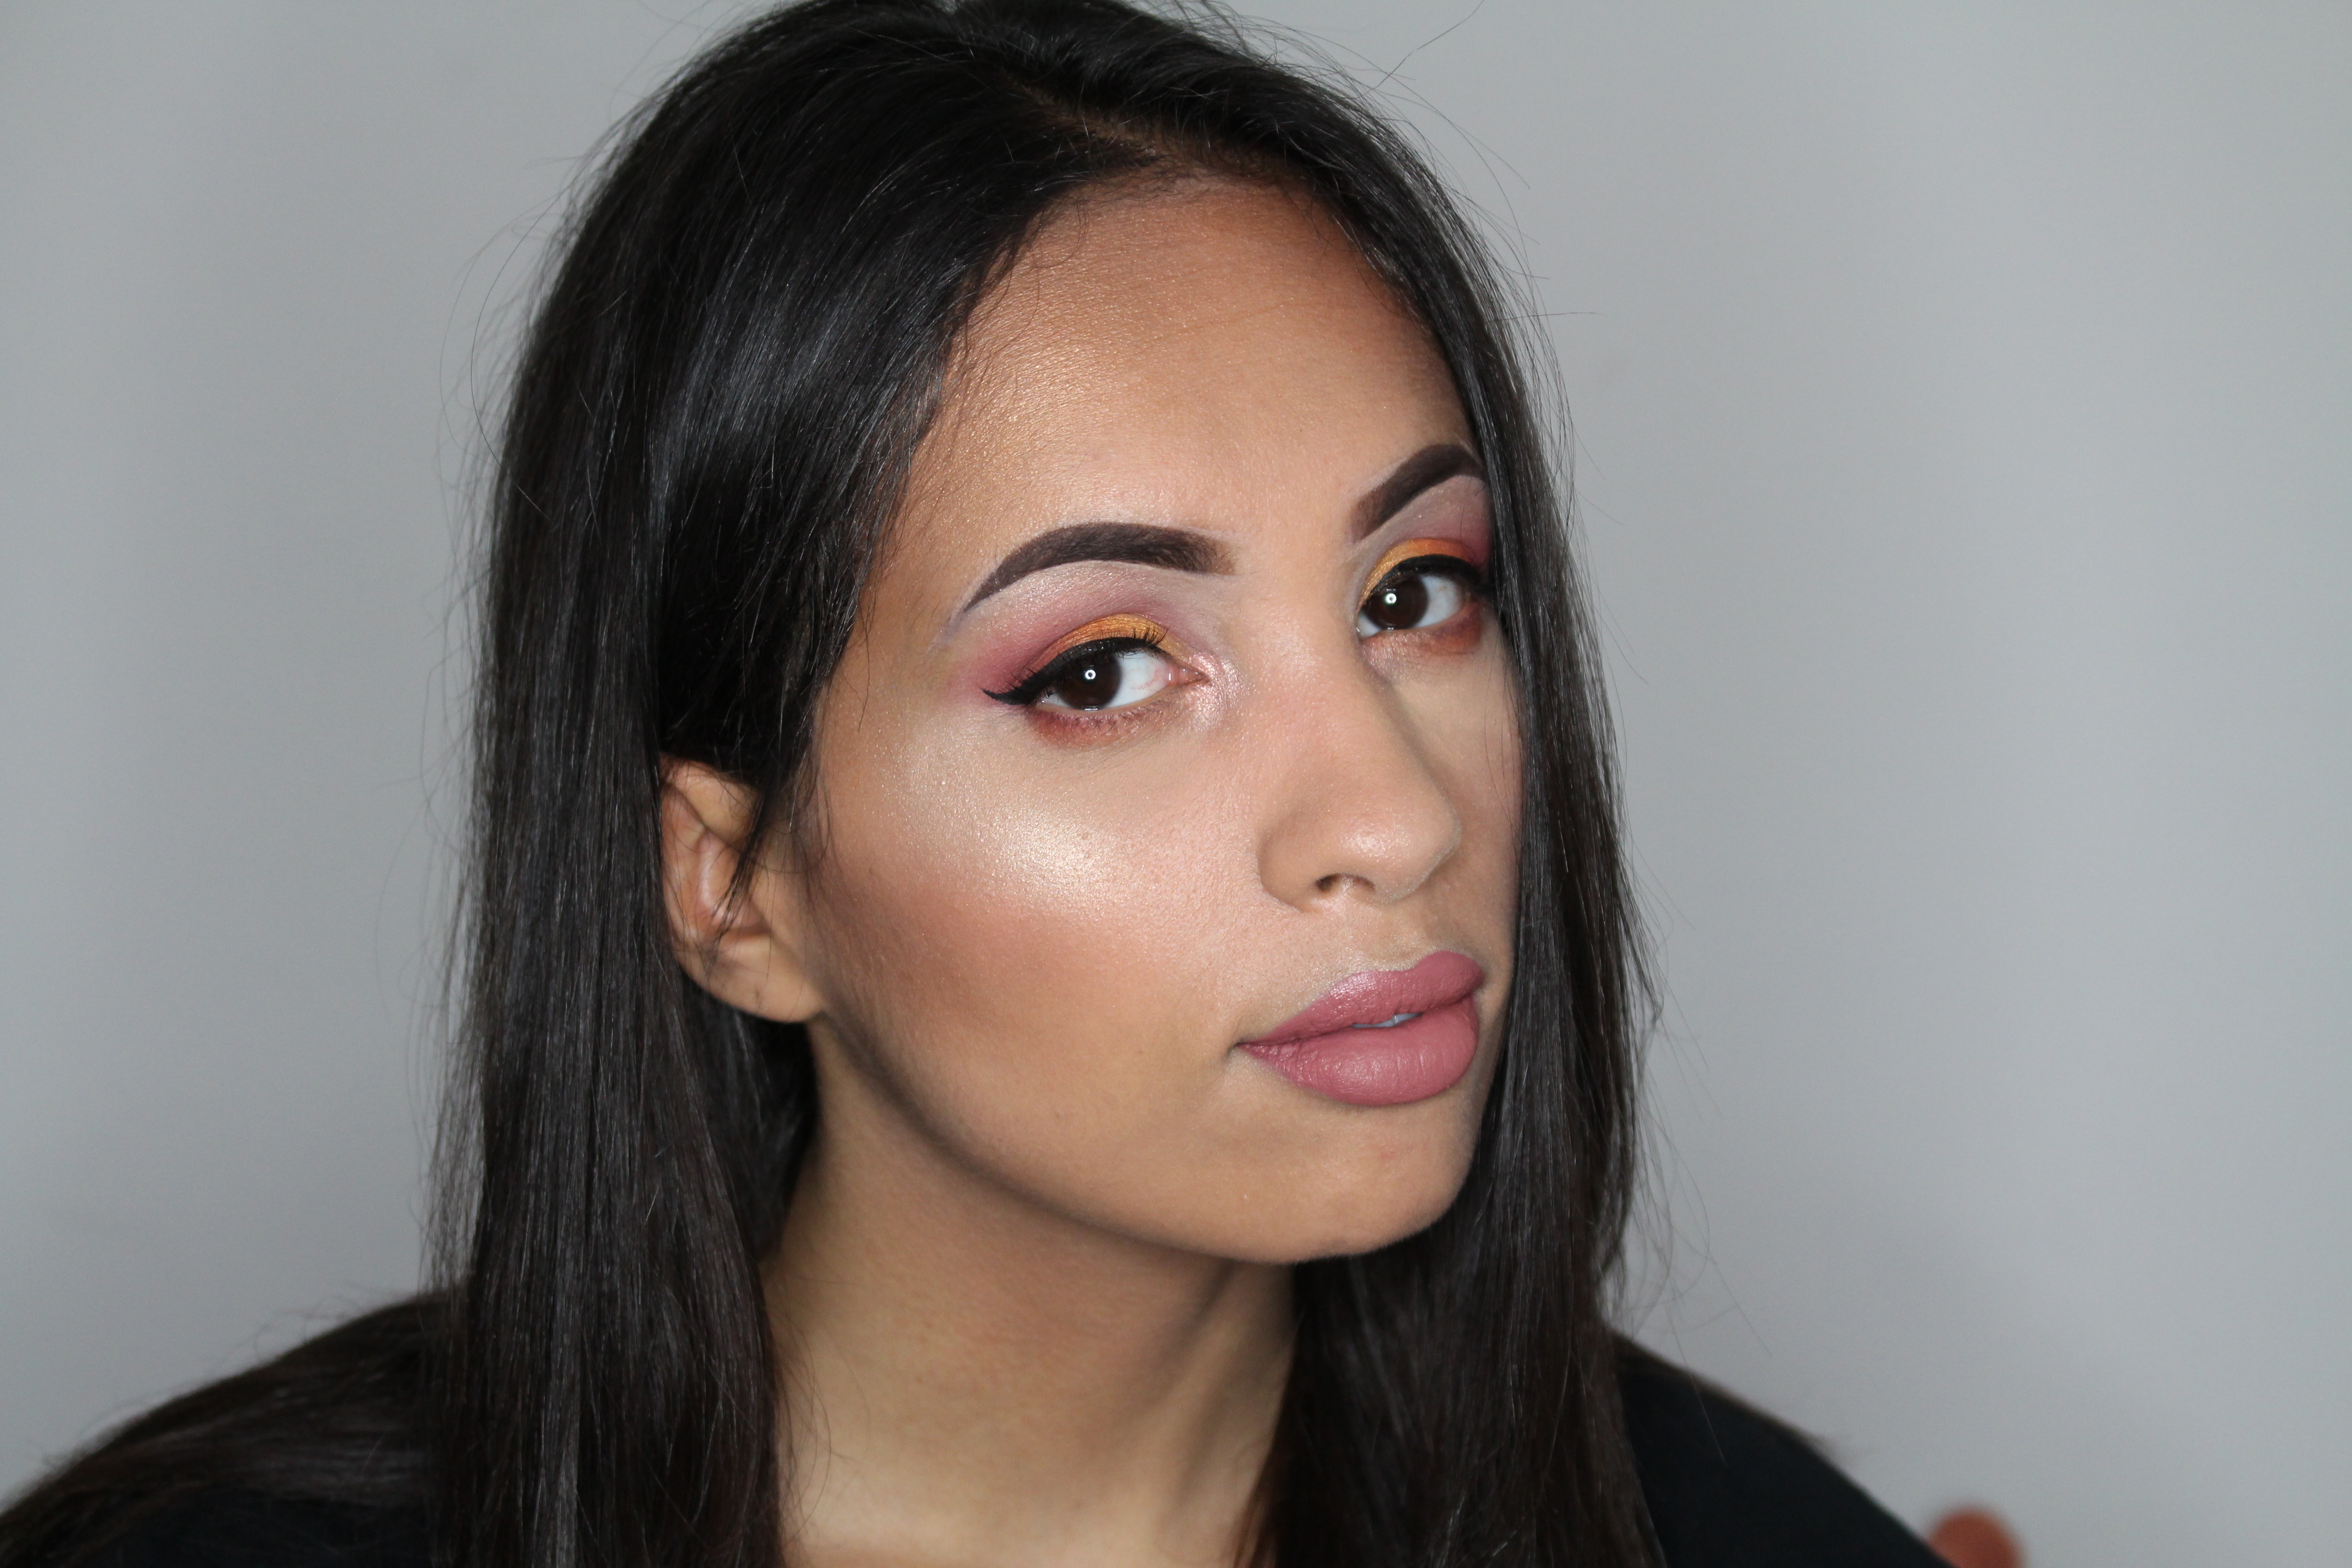 Beautybloggers zomer geïnspireerde make-up looks!